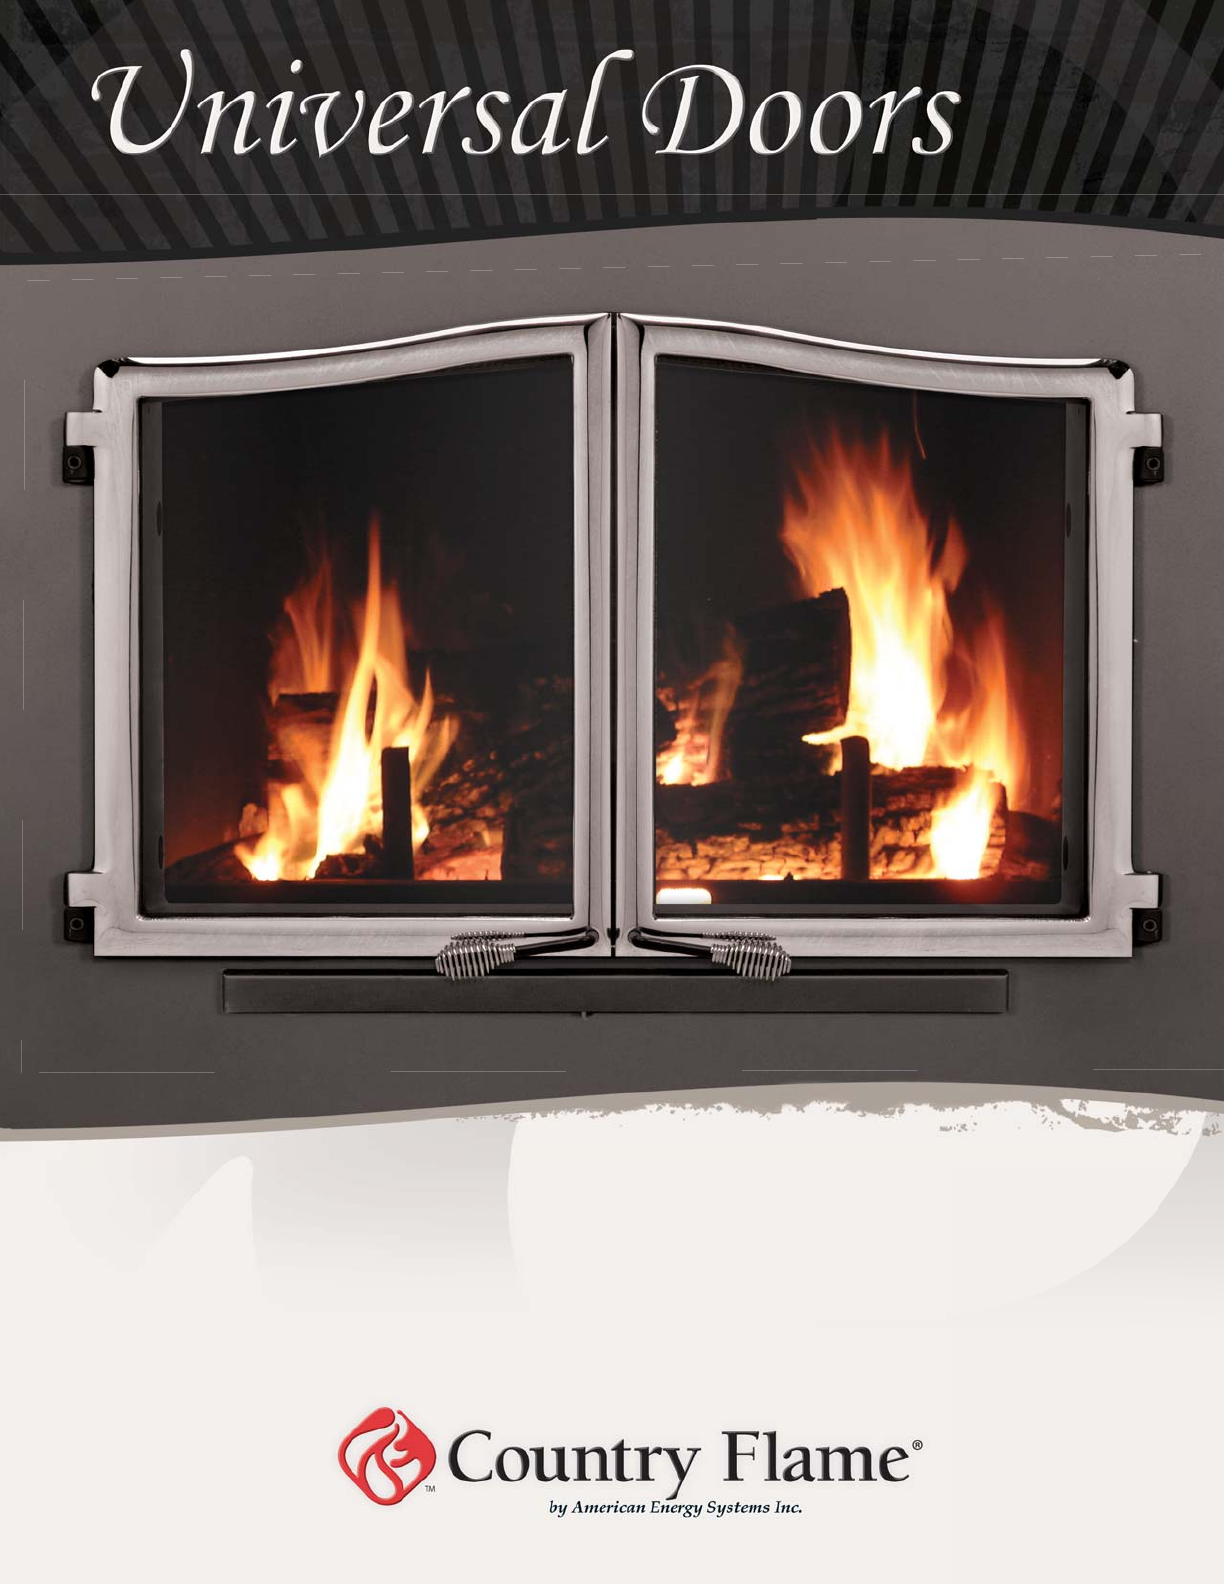 Country Flame Indoor Fireplace 400 SERIES User Guide ...